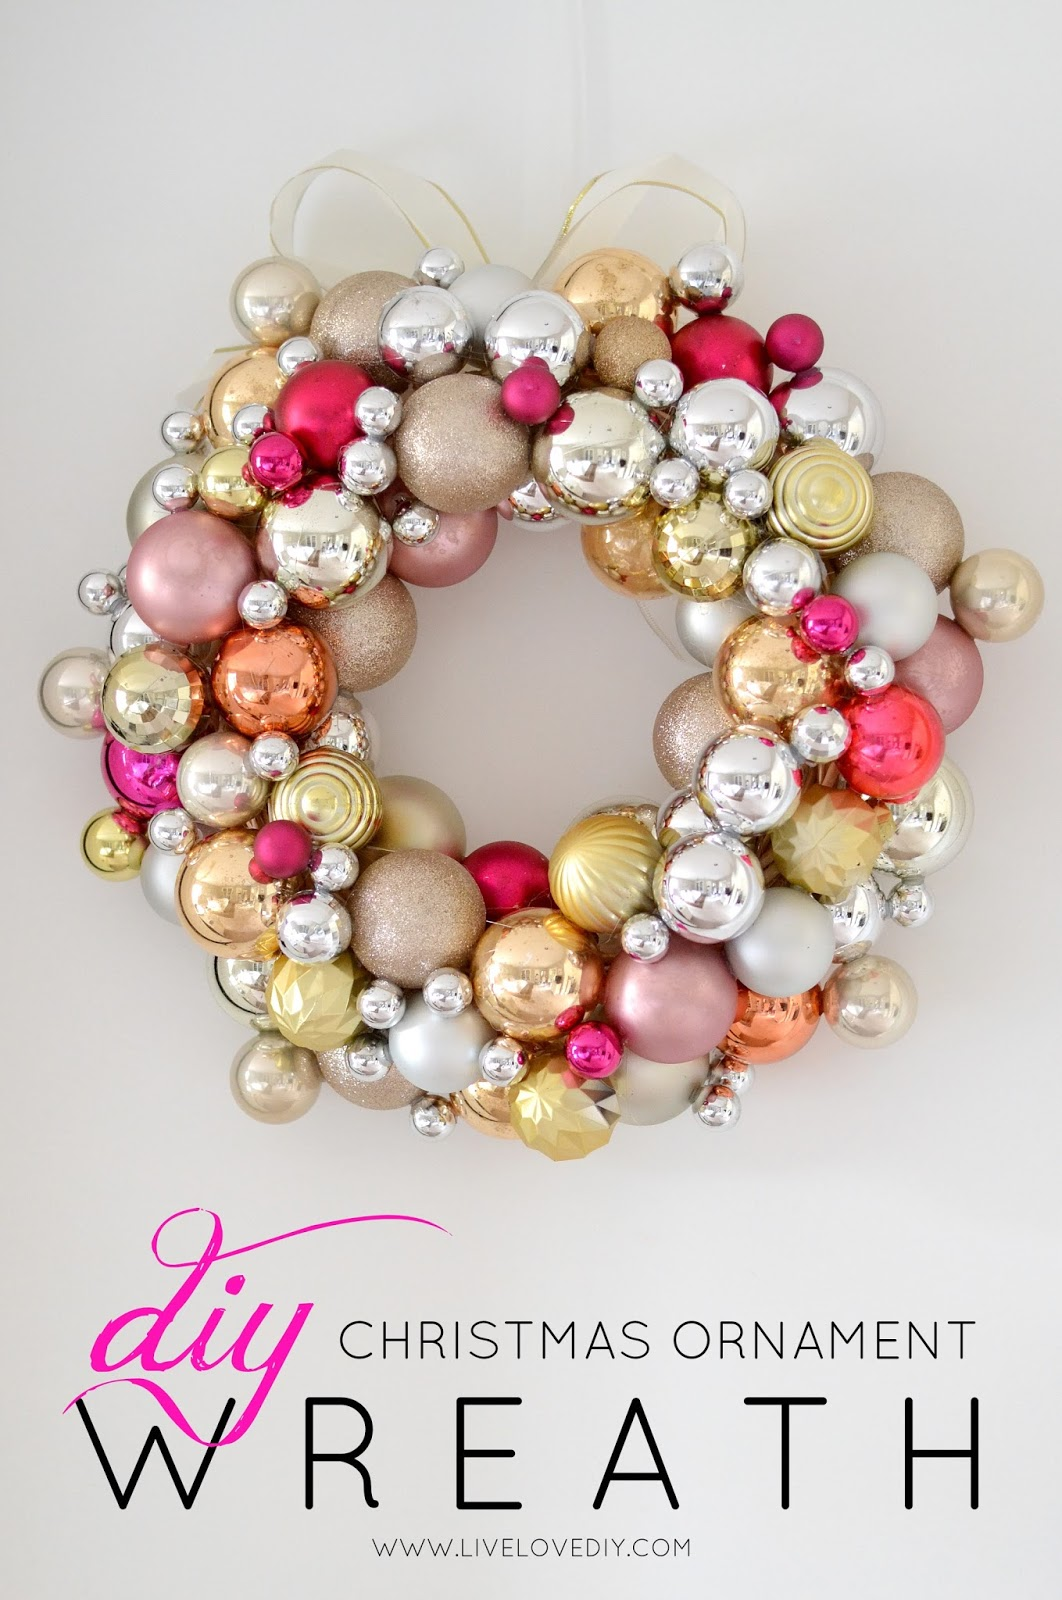 The best 25 christmas wreaths ideas source live love diy solutioingenieria Images